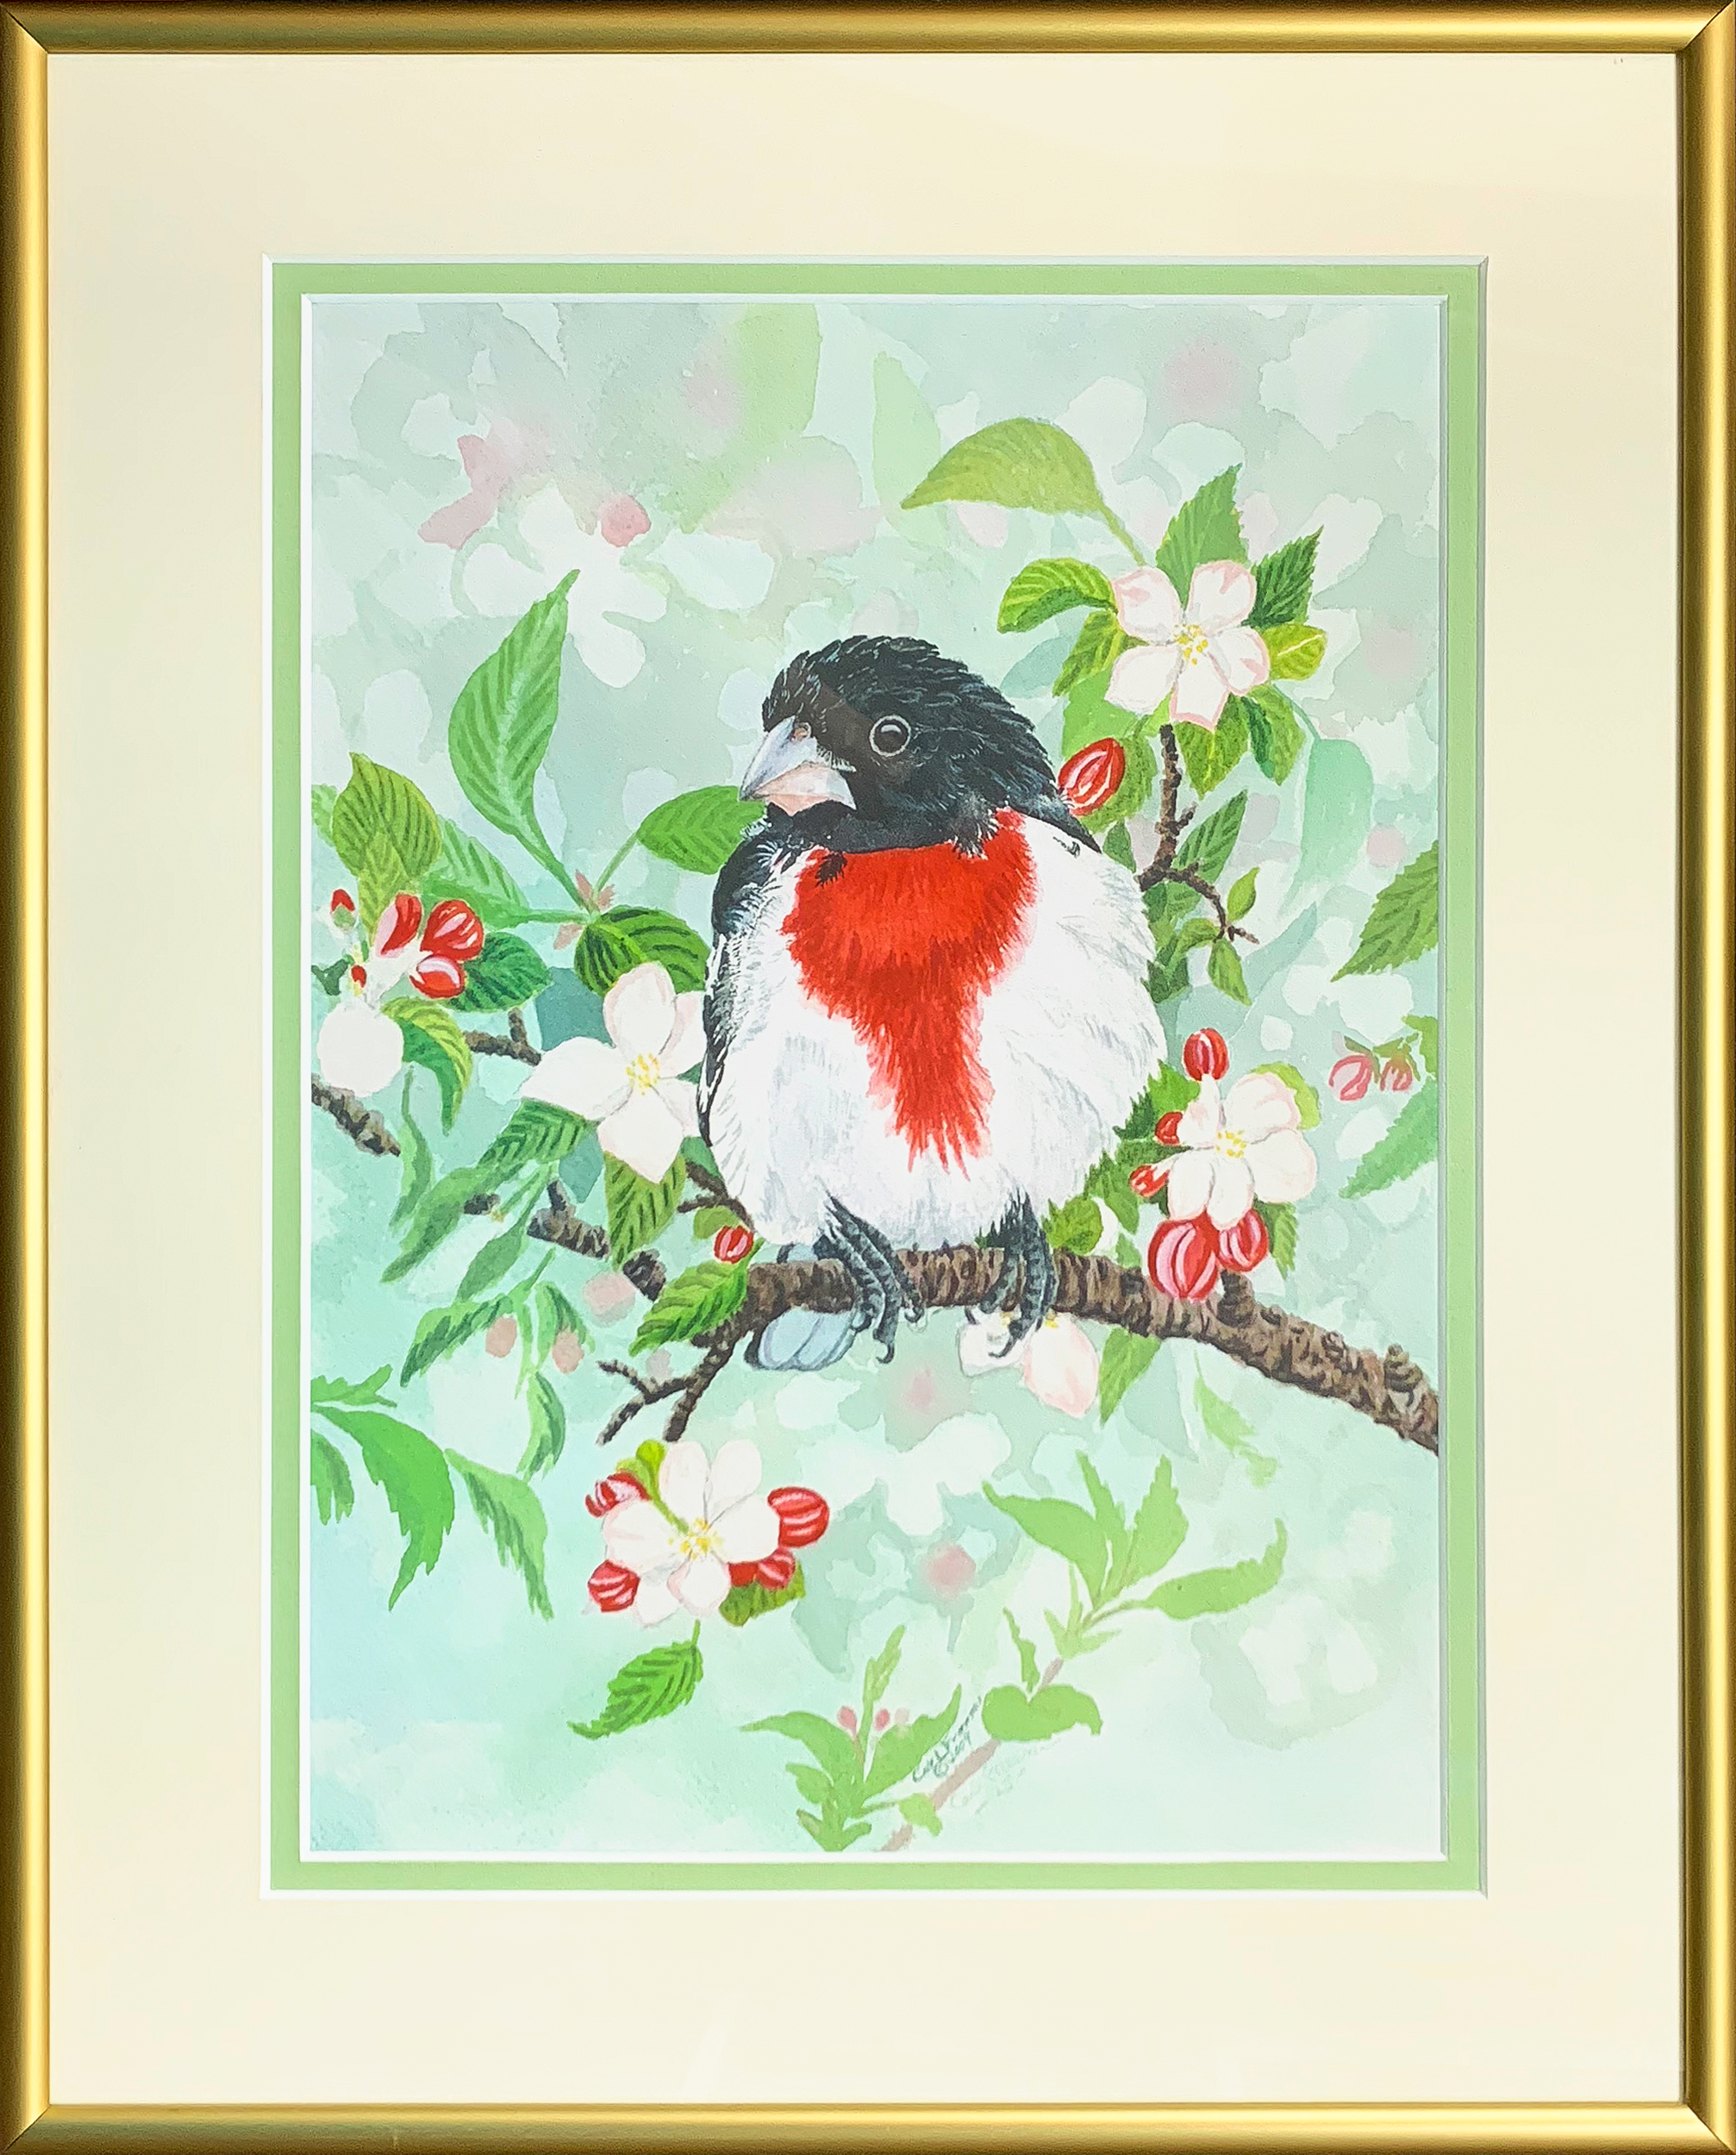 Rose breasted grosbeak framed iz2fwv